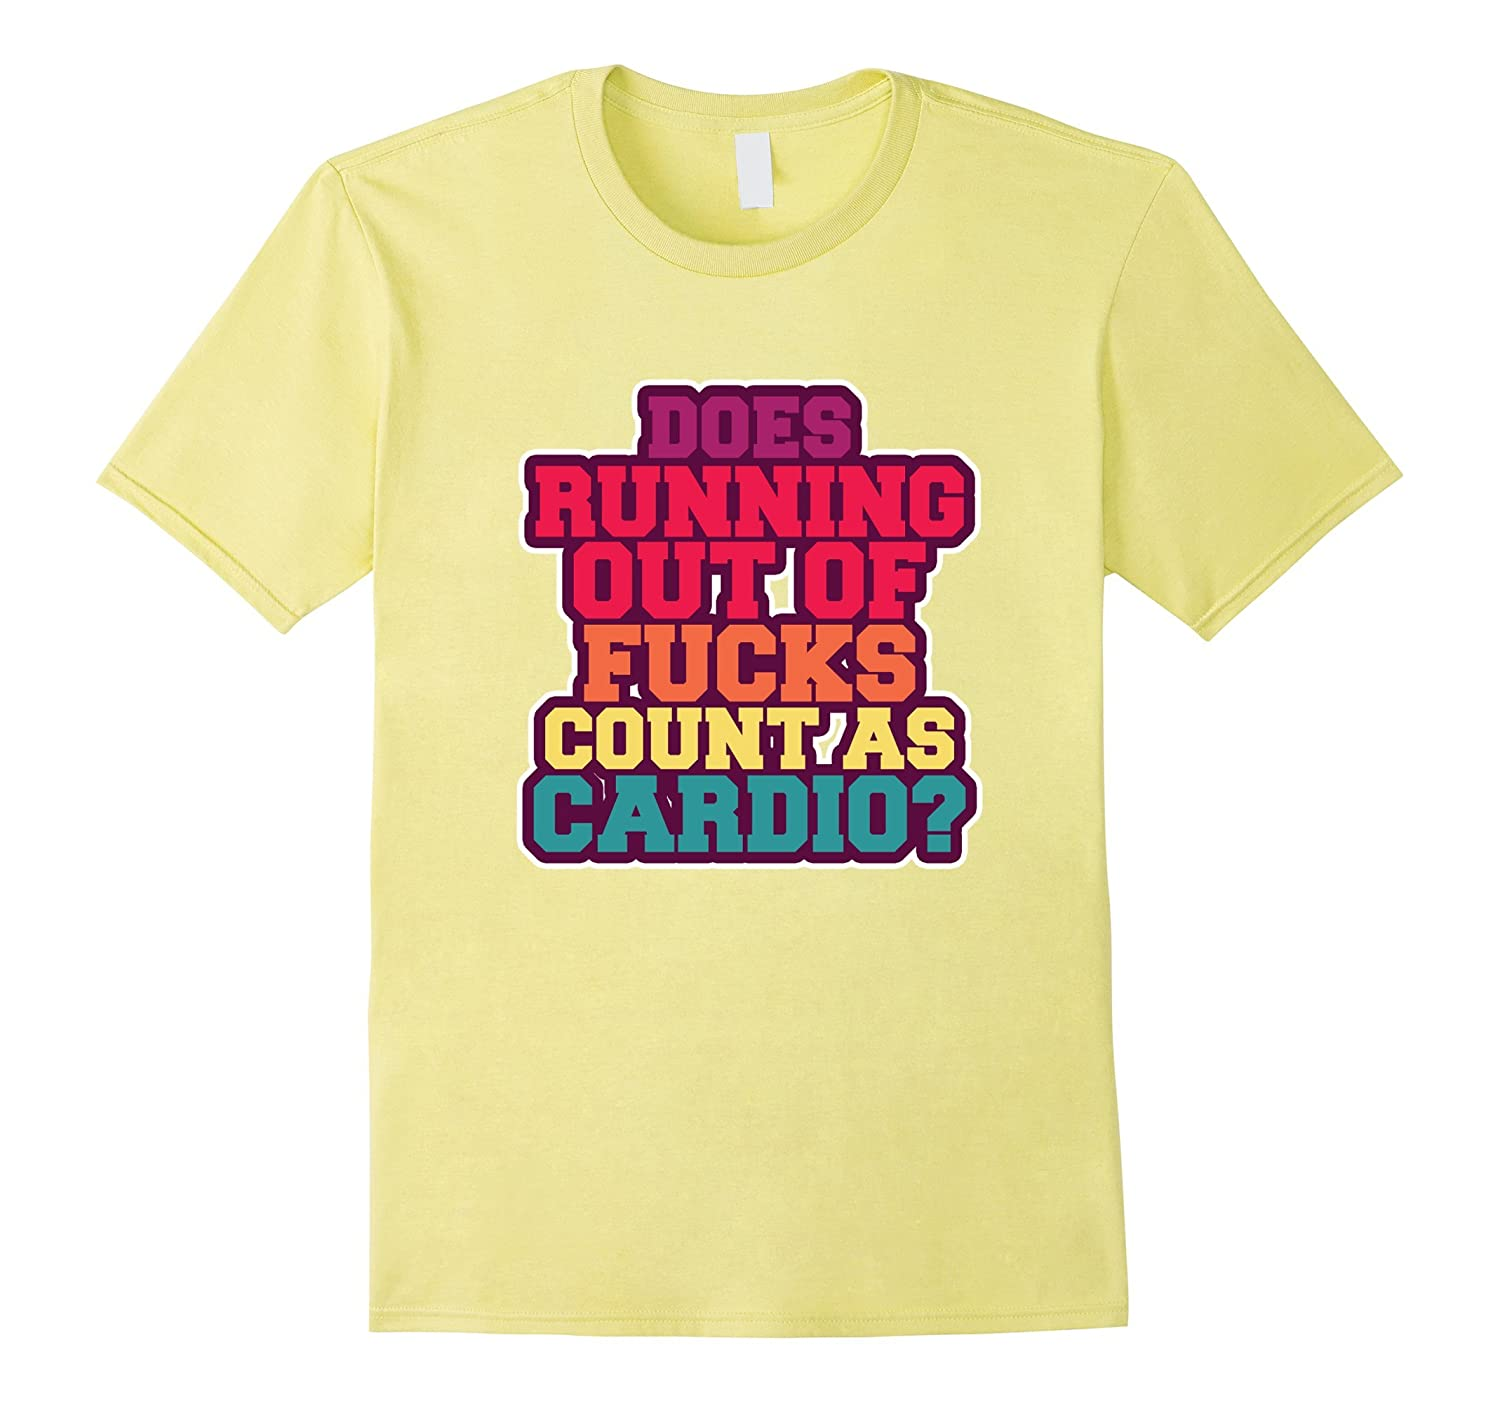 Does Running Out Of Fuck Count As Cardio- Funny Shirt